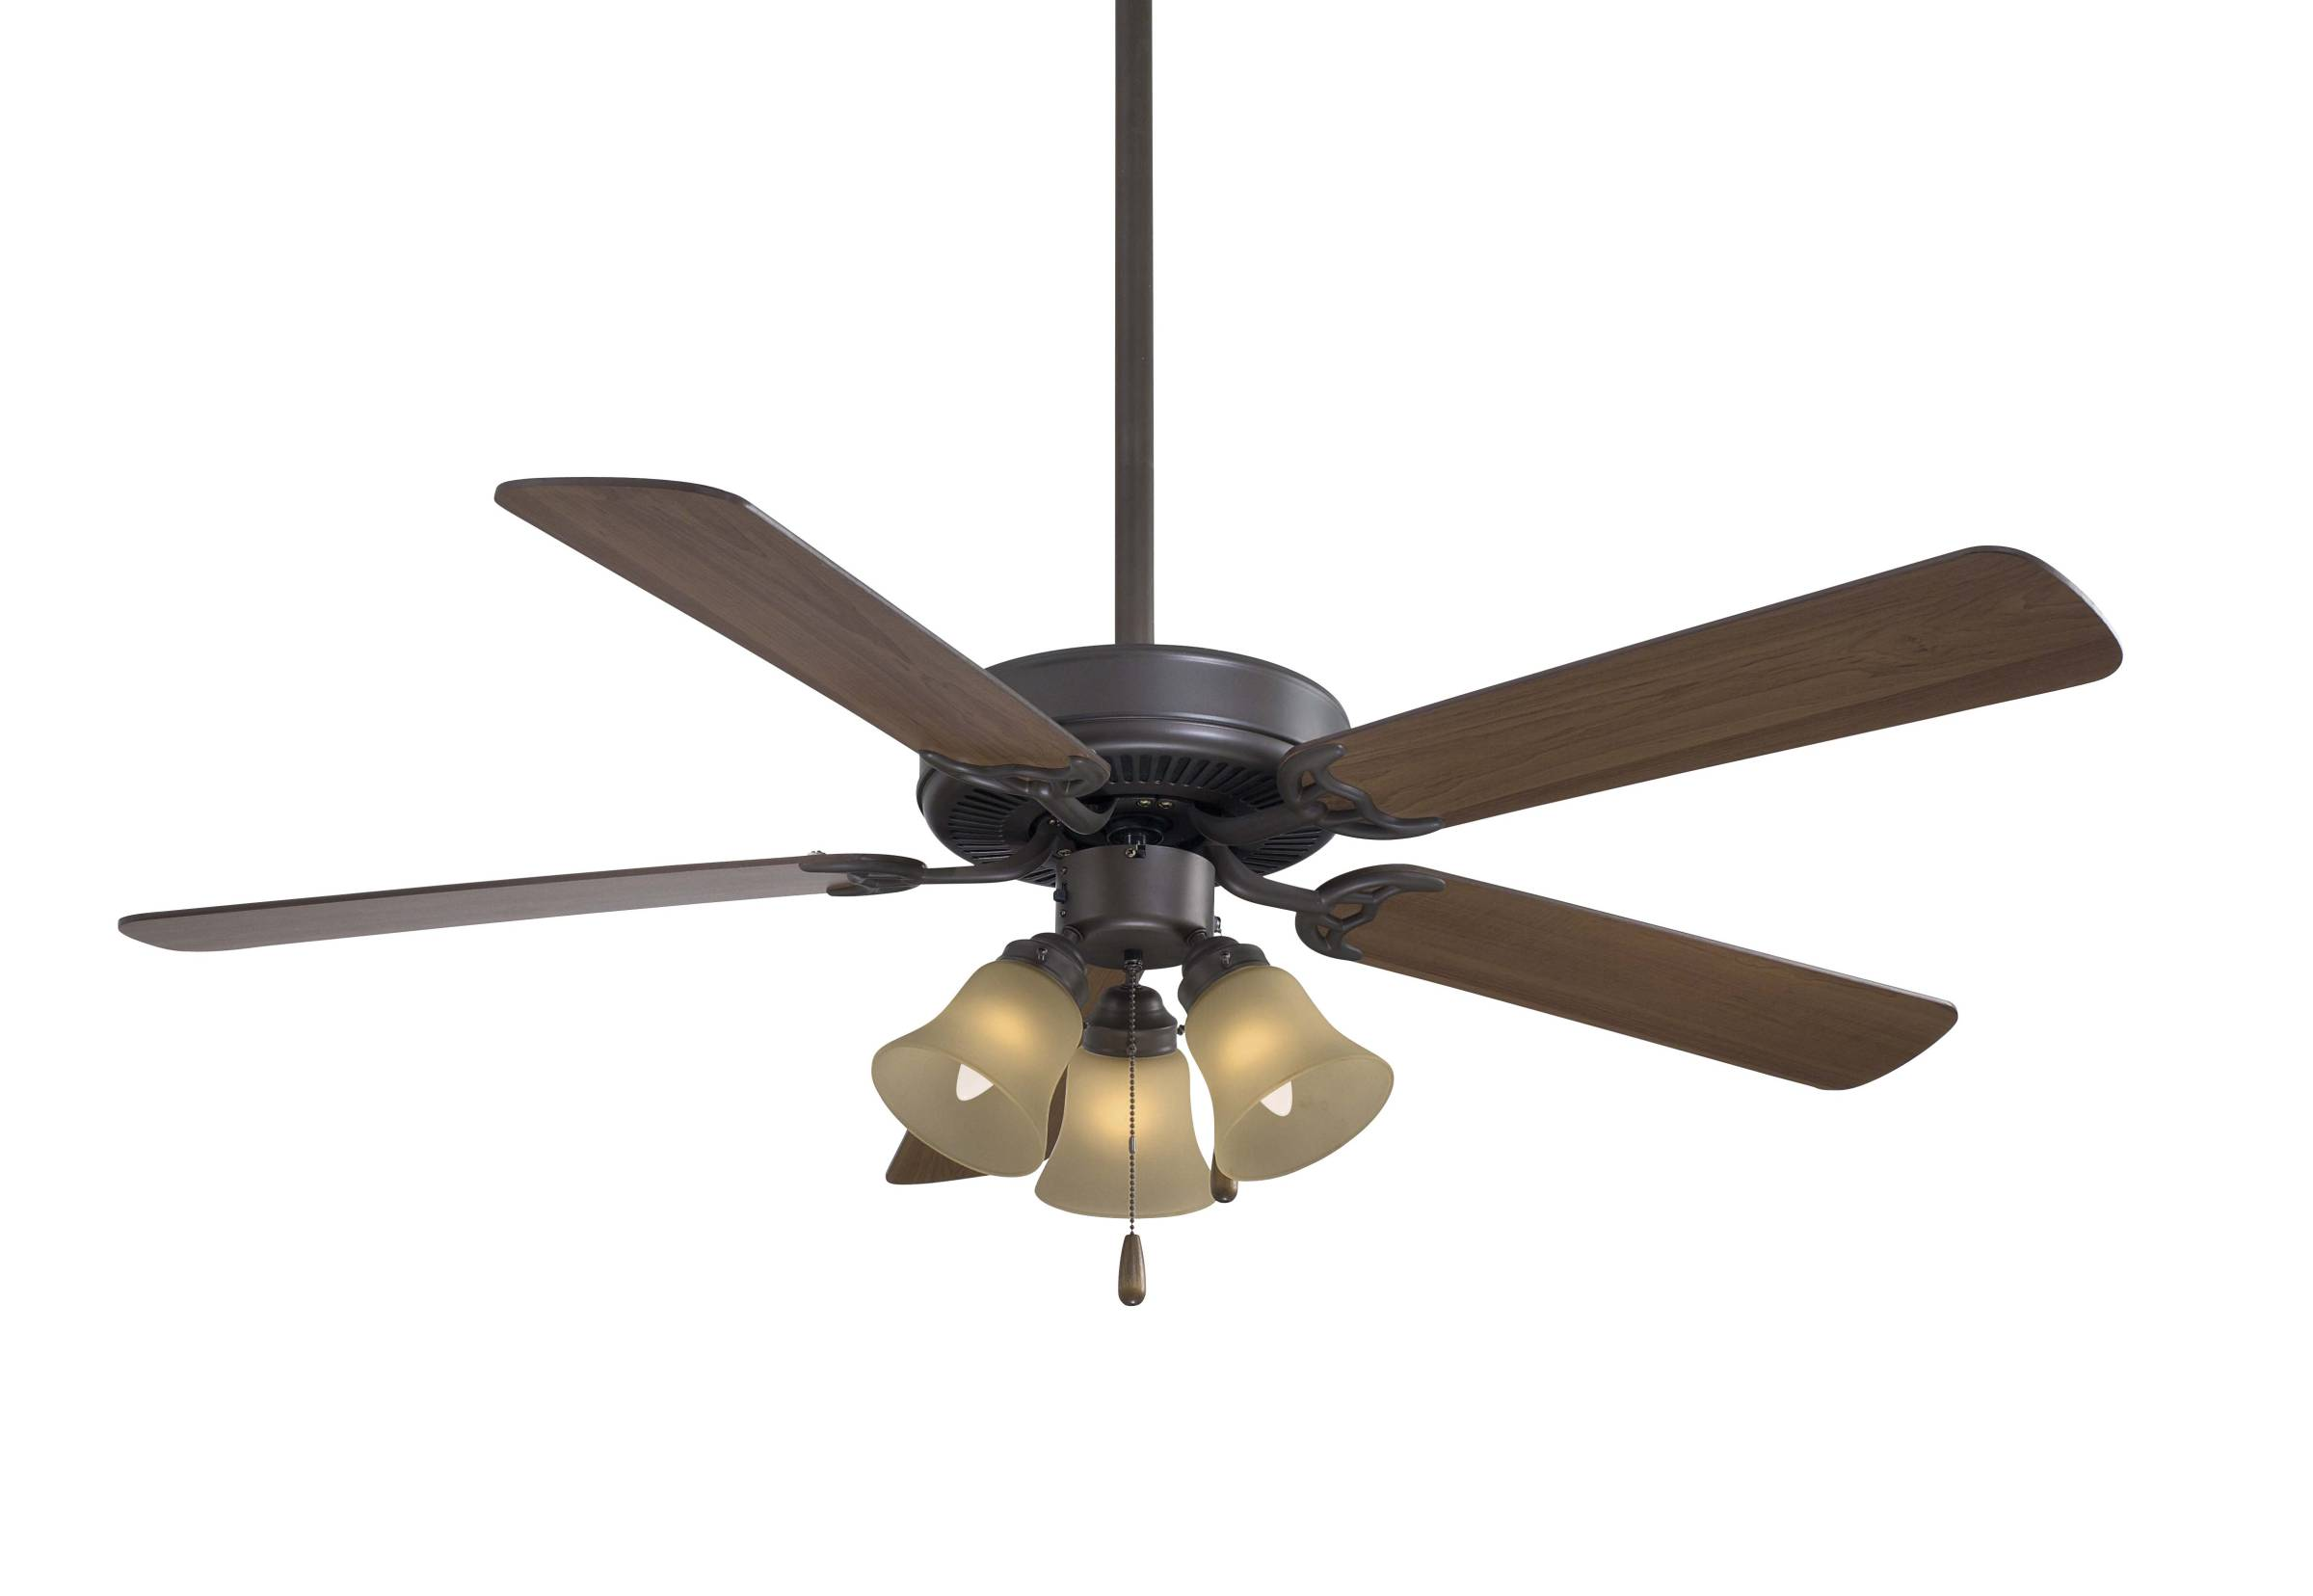 TOP 10 Luxury ceiling fans 2018